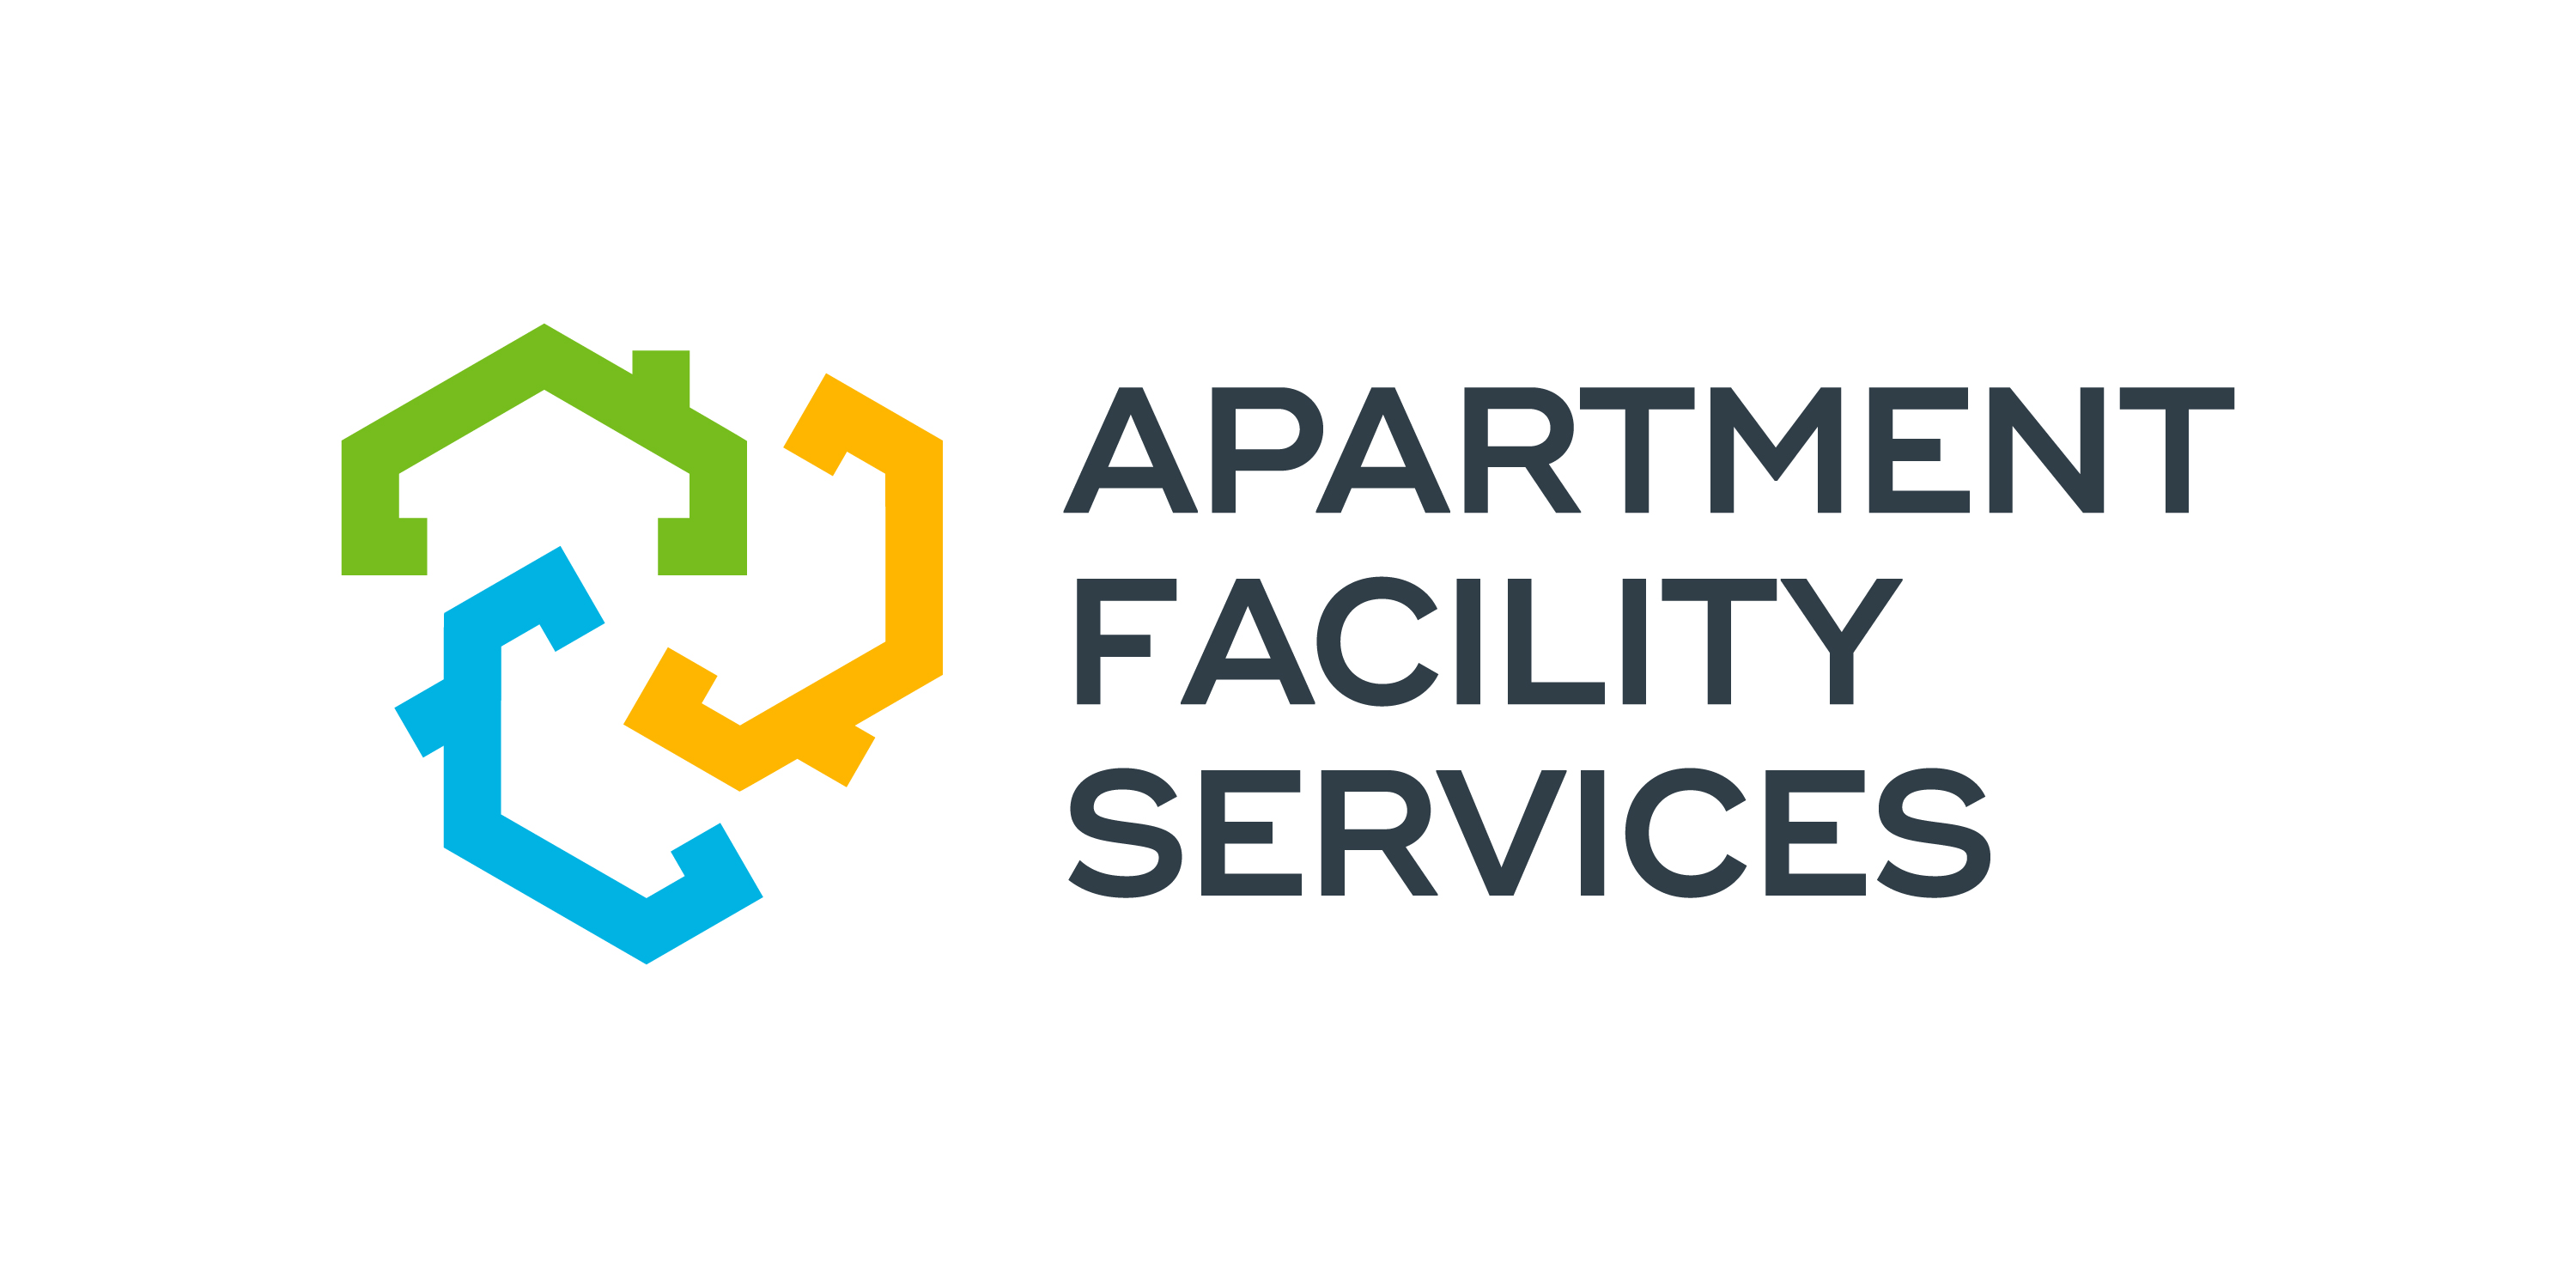 Make ready and valet trash apartment facility services for Make ready apartment